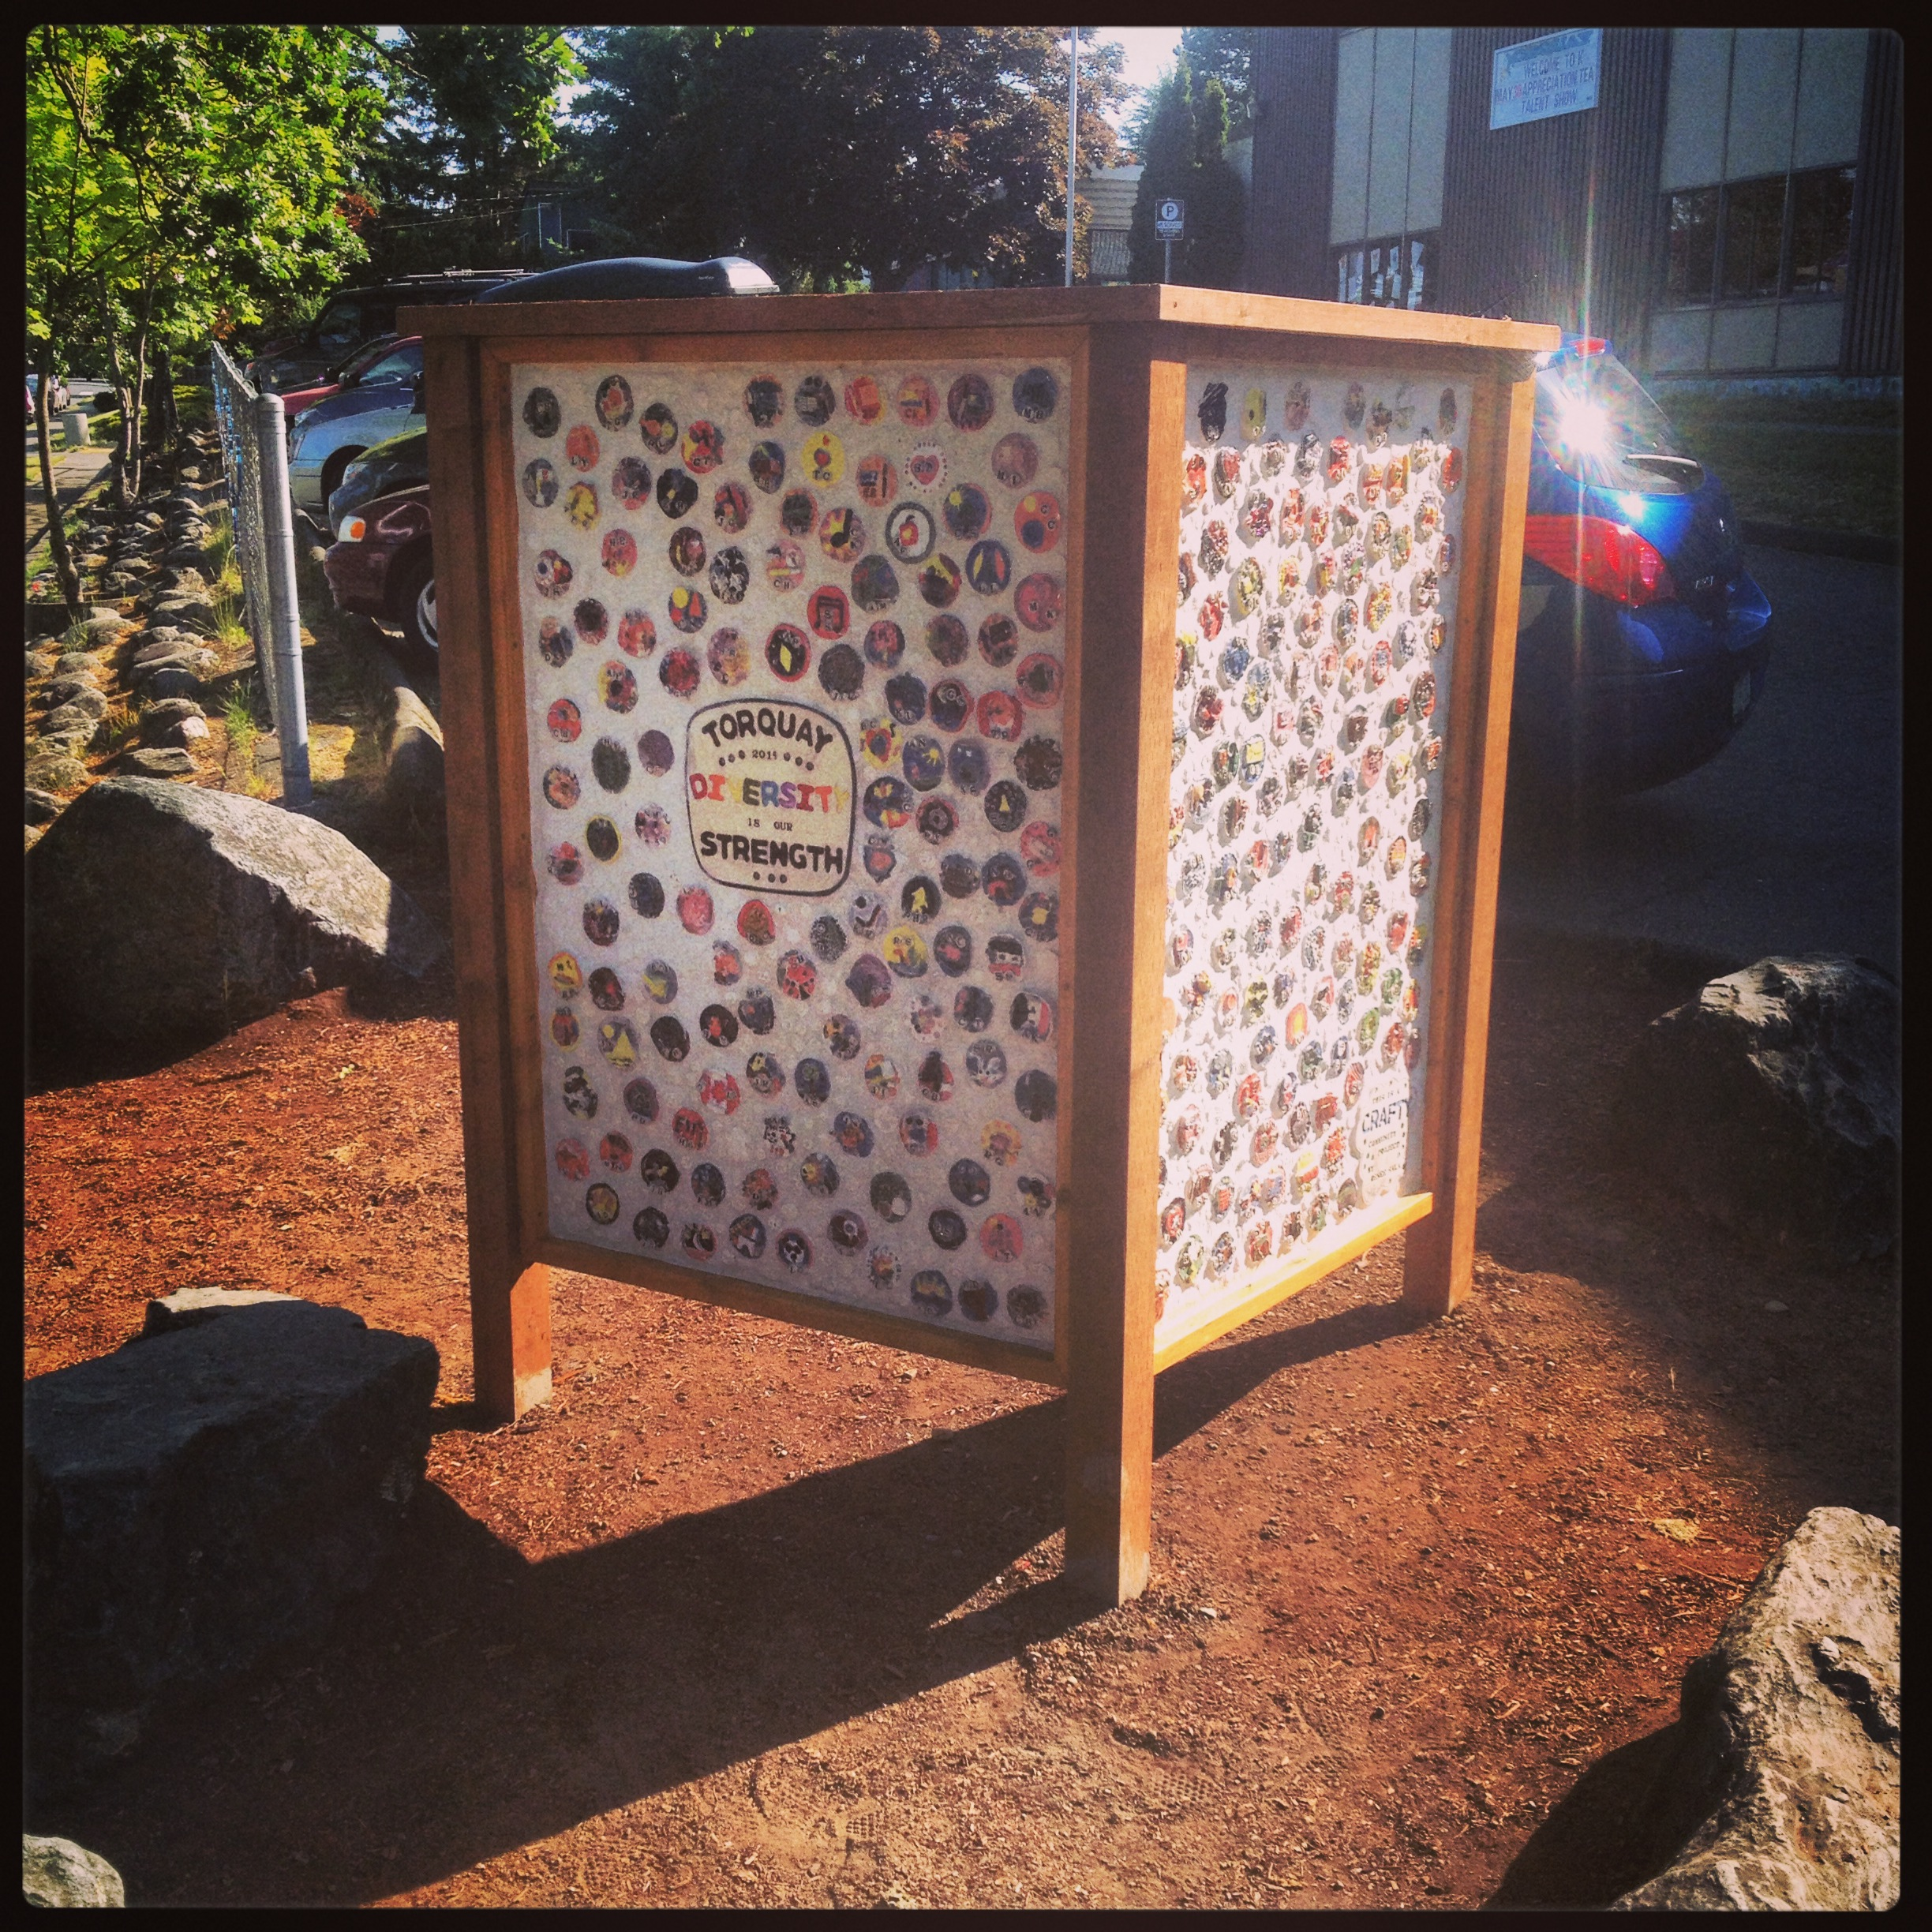 Torquay Elementary's 'Diversity Mosaic' proudly stands at the entrance to their school. It was funded through ArtStarts!